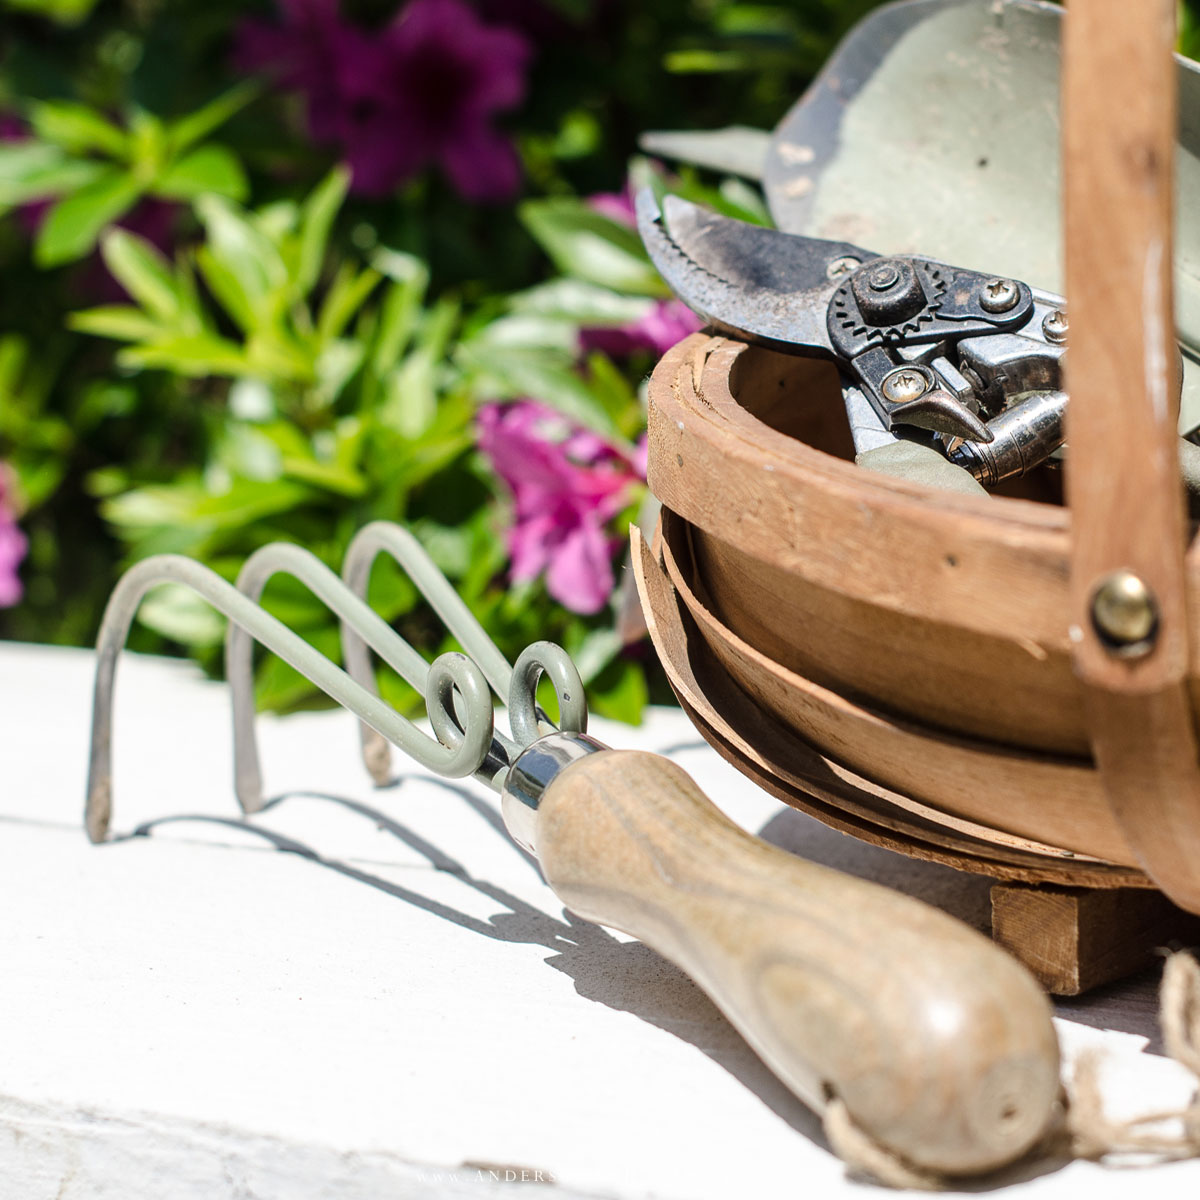 Must Have Hand Tools for Any Gardener